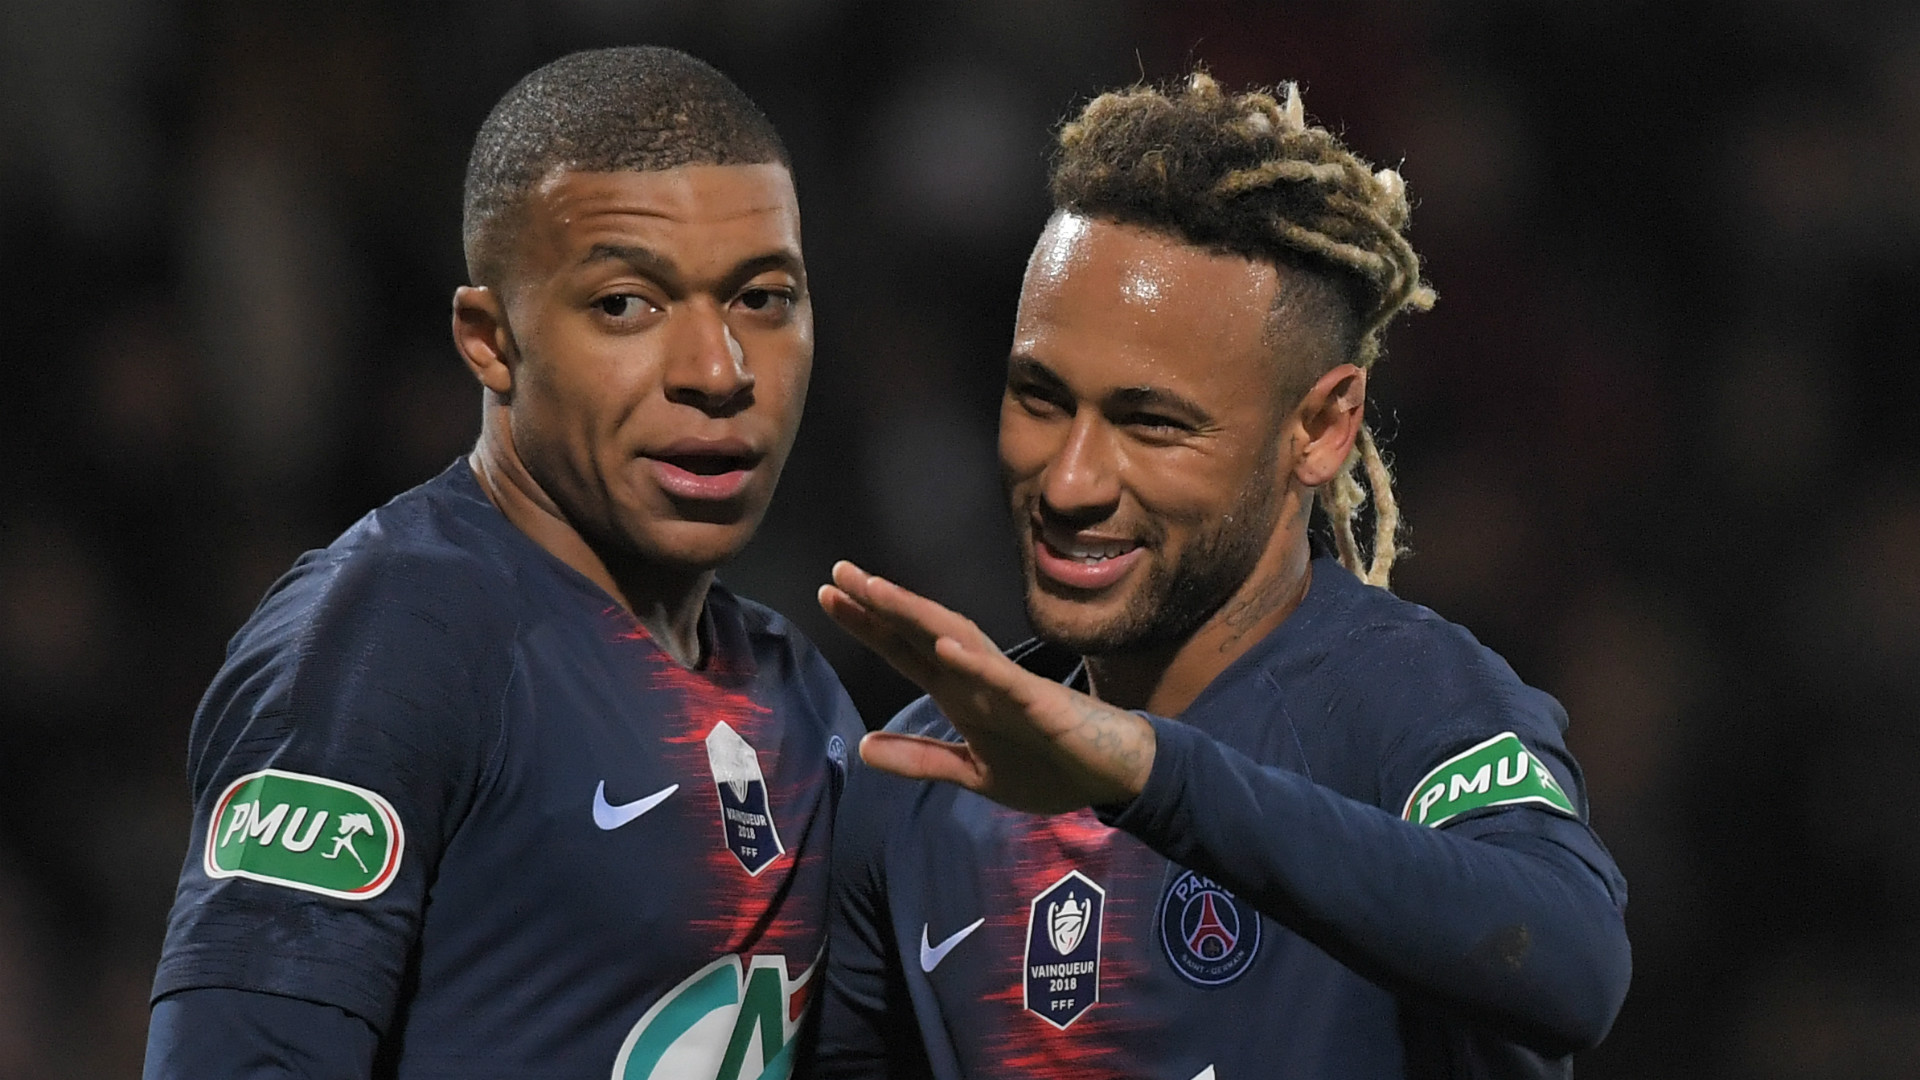 Neymar and Mbappe are future Ballon d'Or winners - Buffon